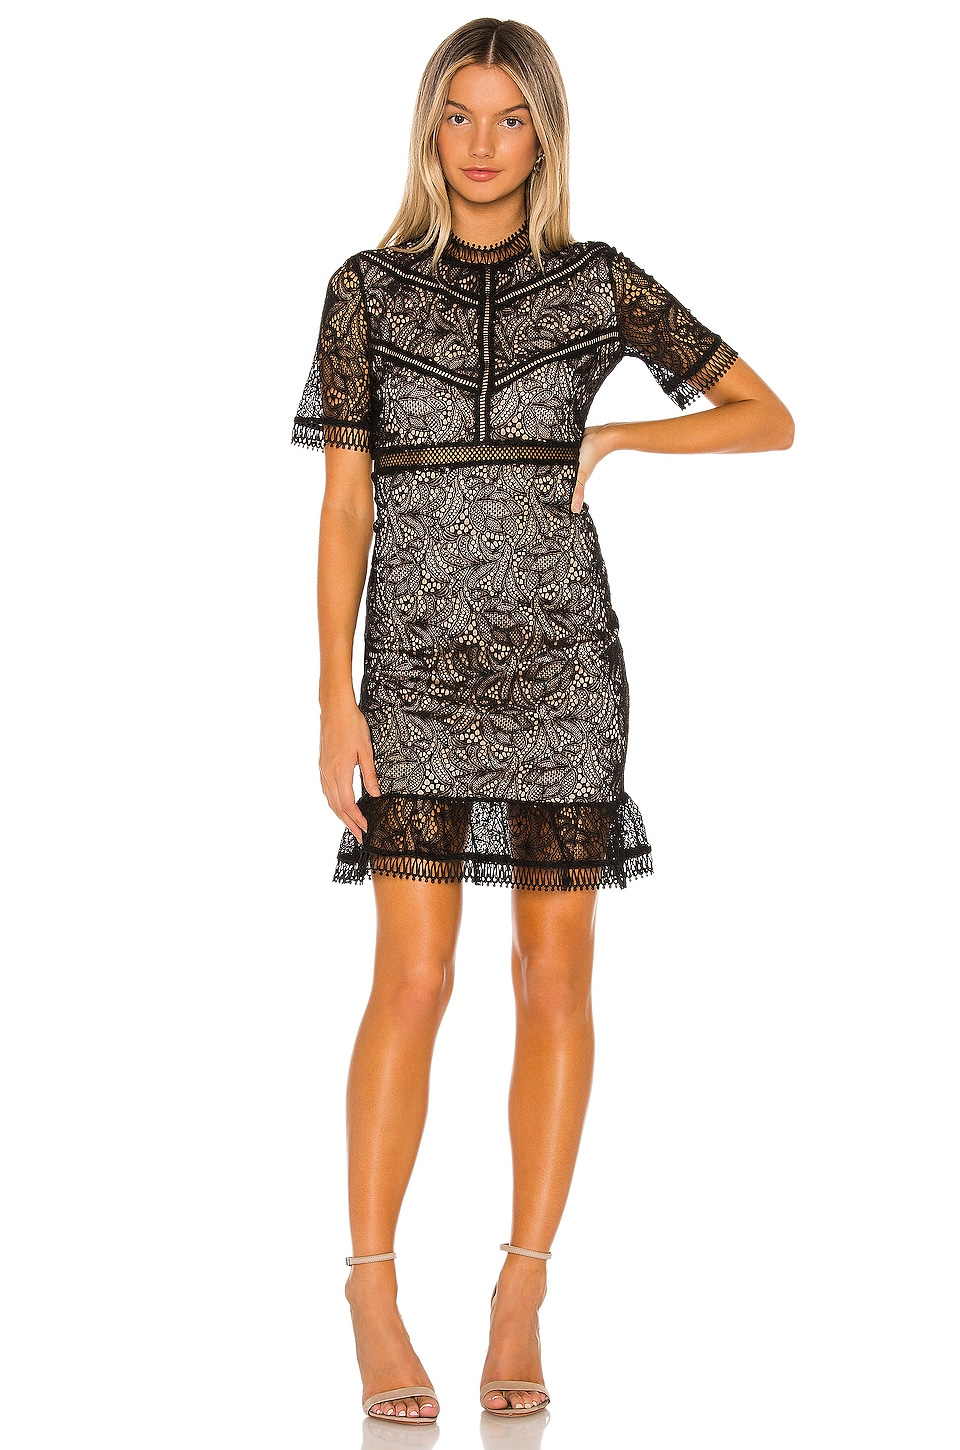 Bardot Theodora lace Dress in Black